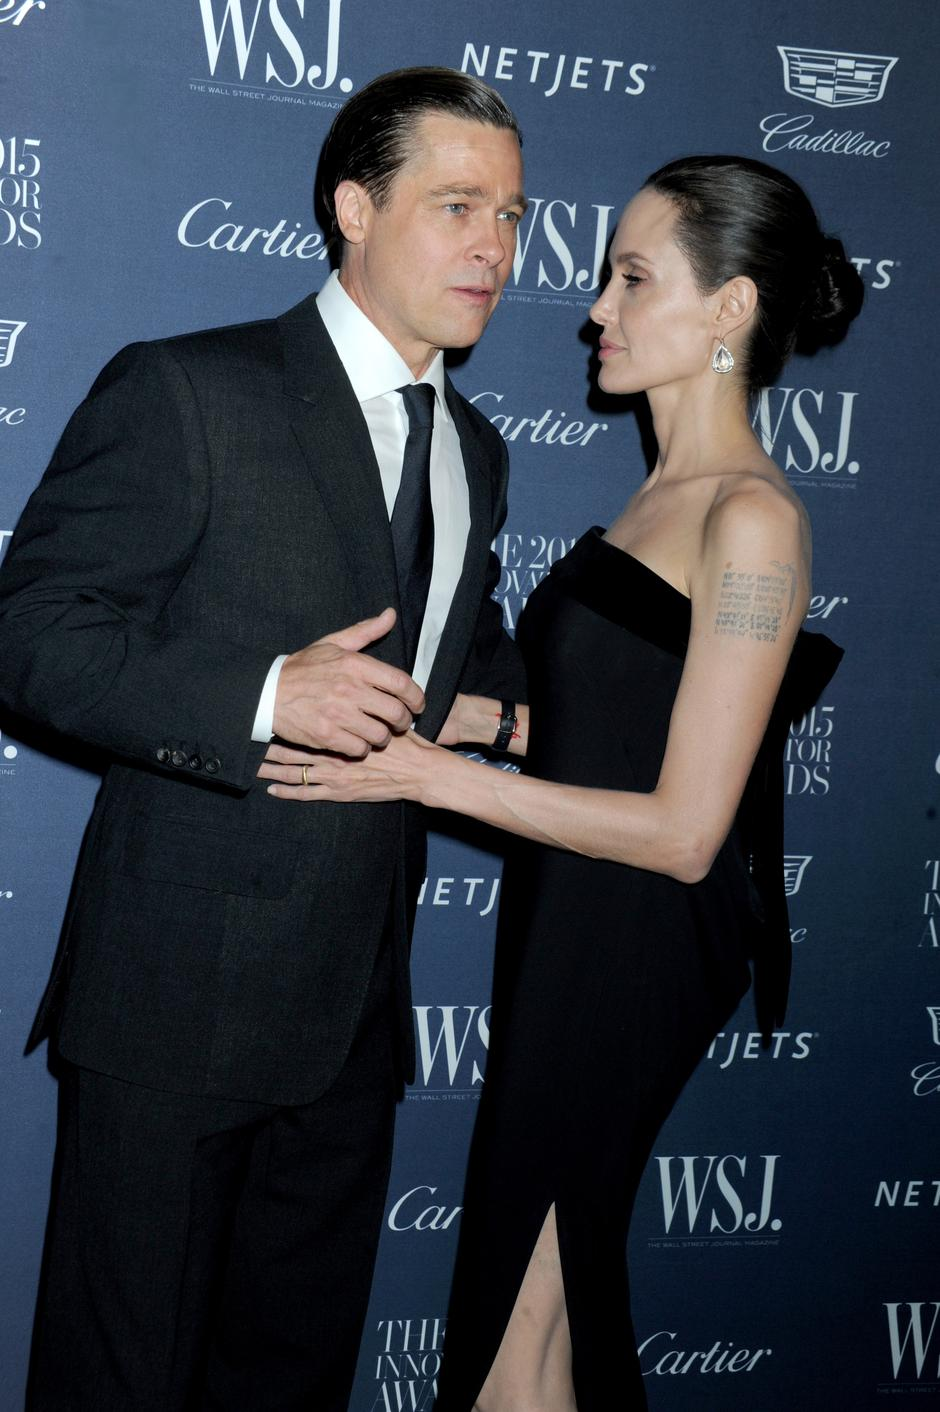 Angelina Jolie And Brad Pitt At Innovator Awards - NYC | Autor: Van Tine Dennis/Press Association/PIXSELL